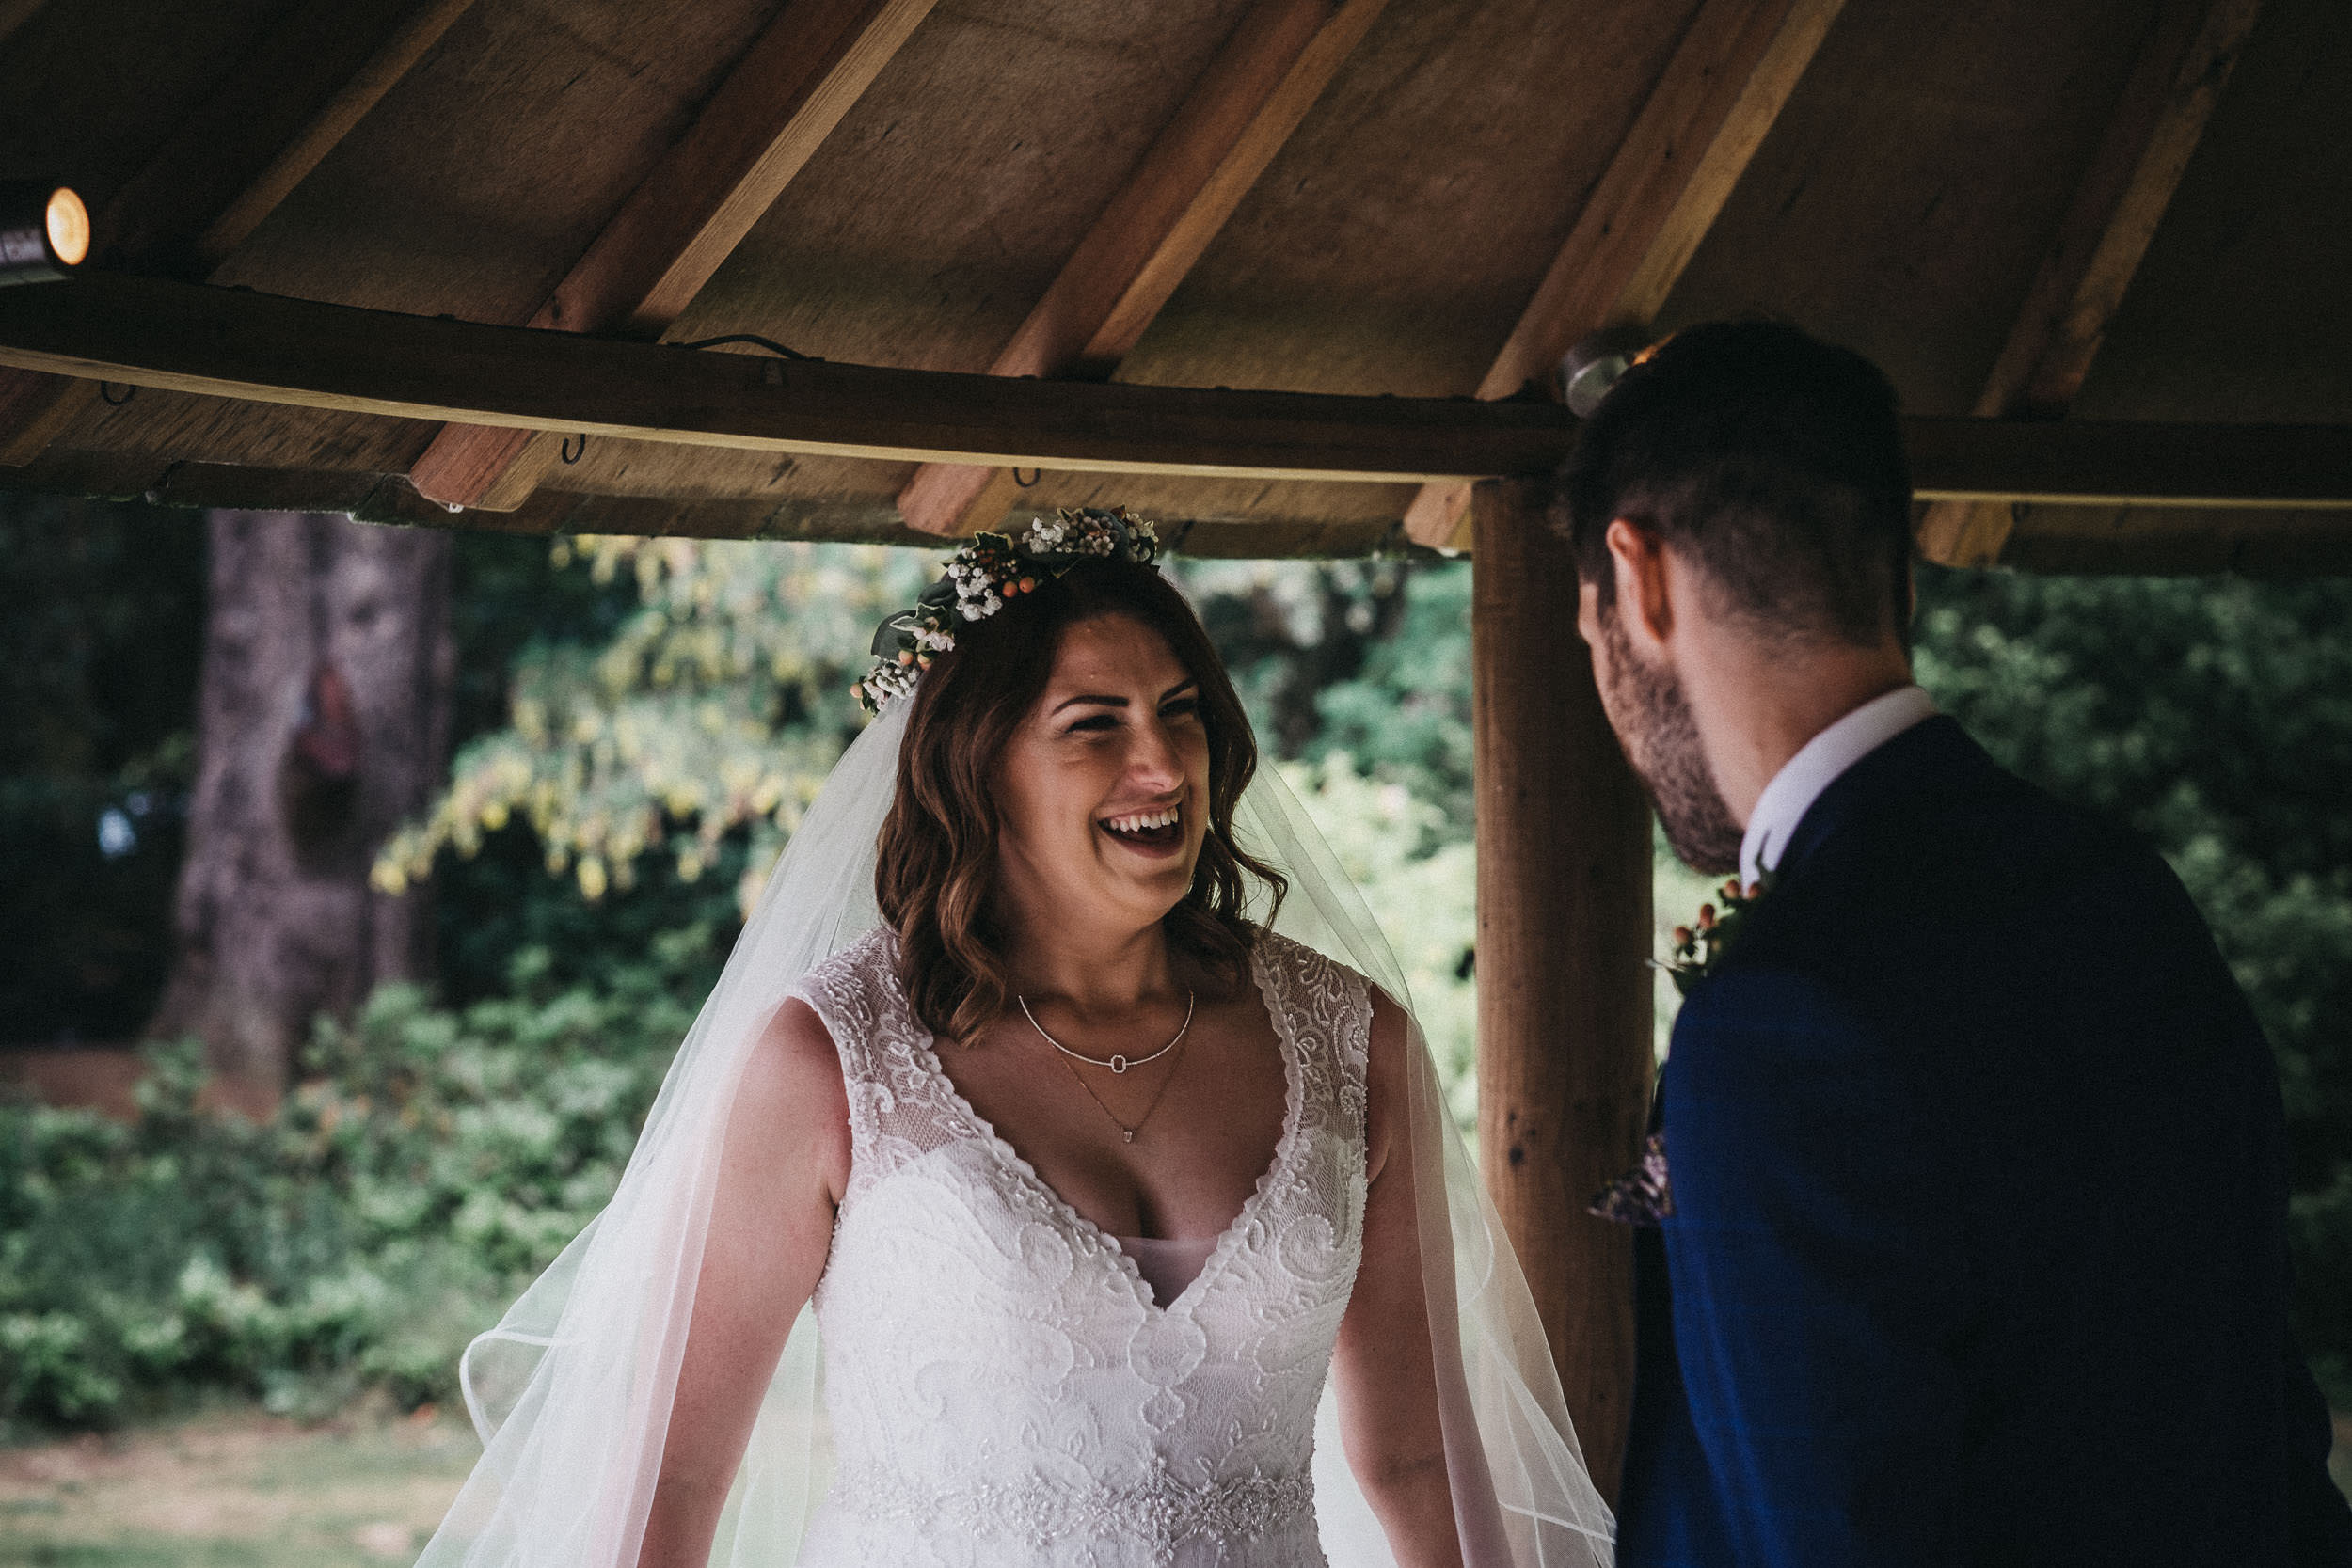 Bride laughing after wedding ceremony